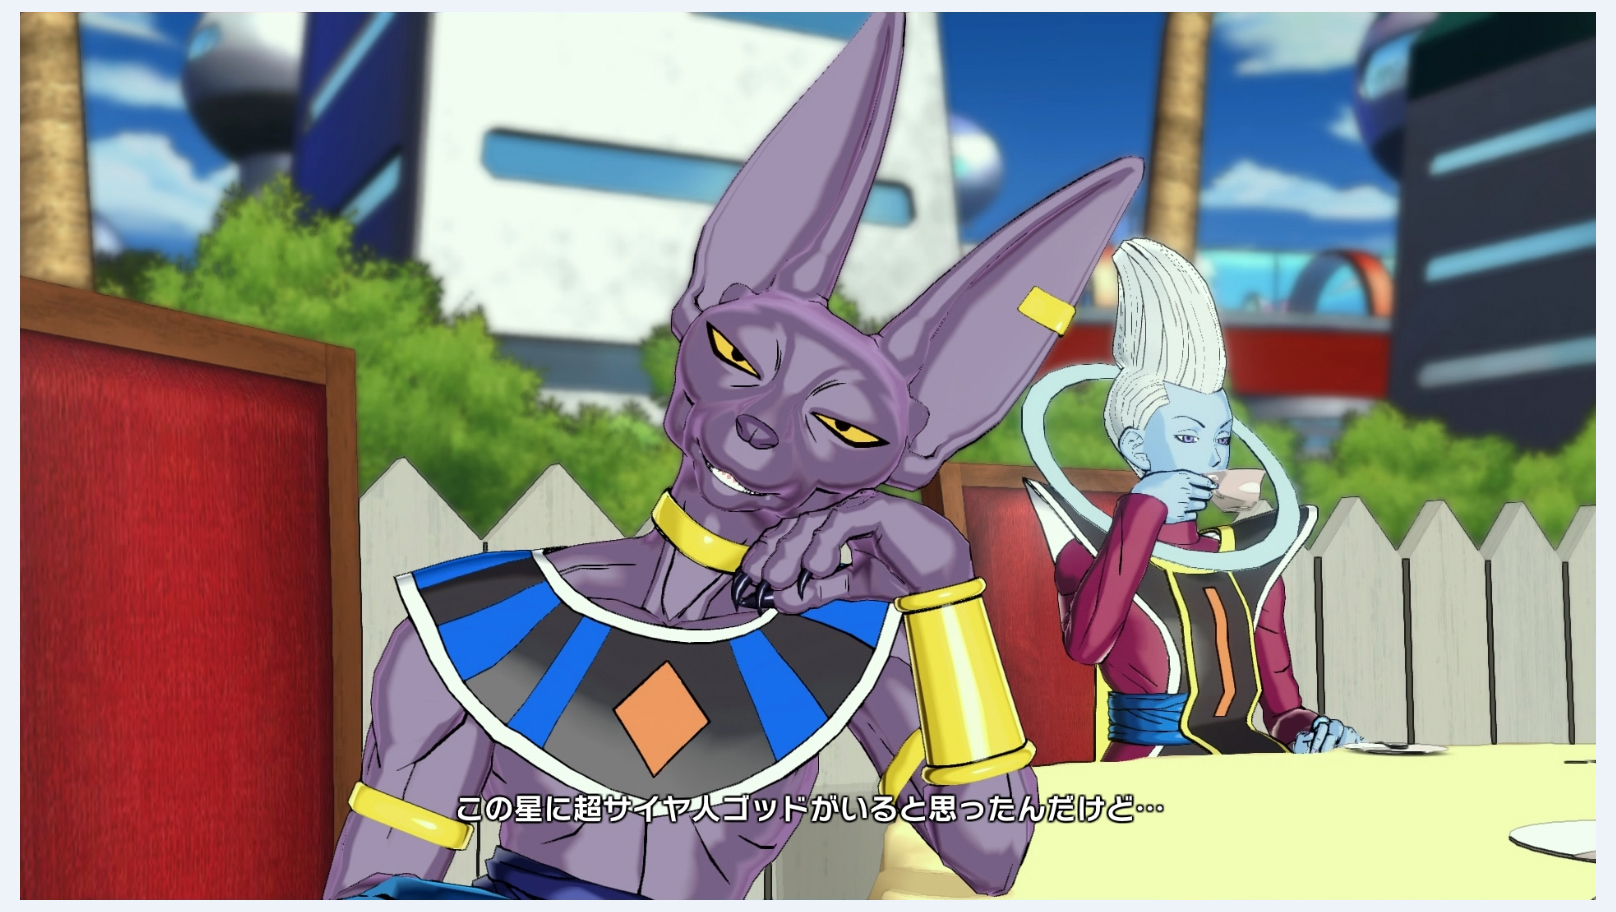 Dragon Ball Xenoverse Jan 2015 Screenshots 2